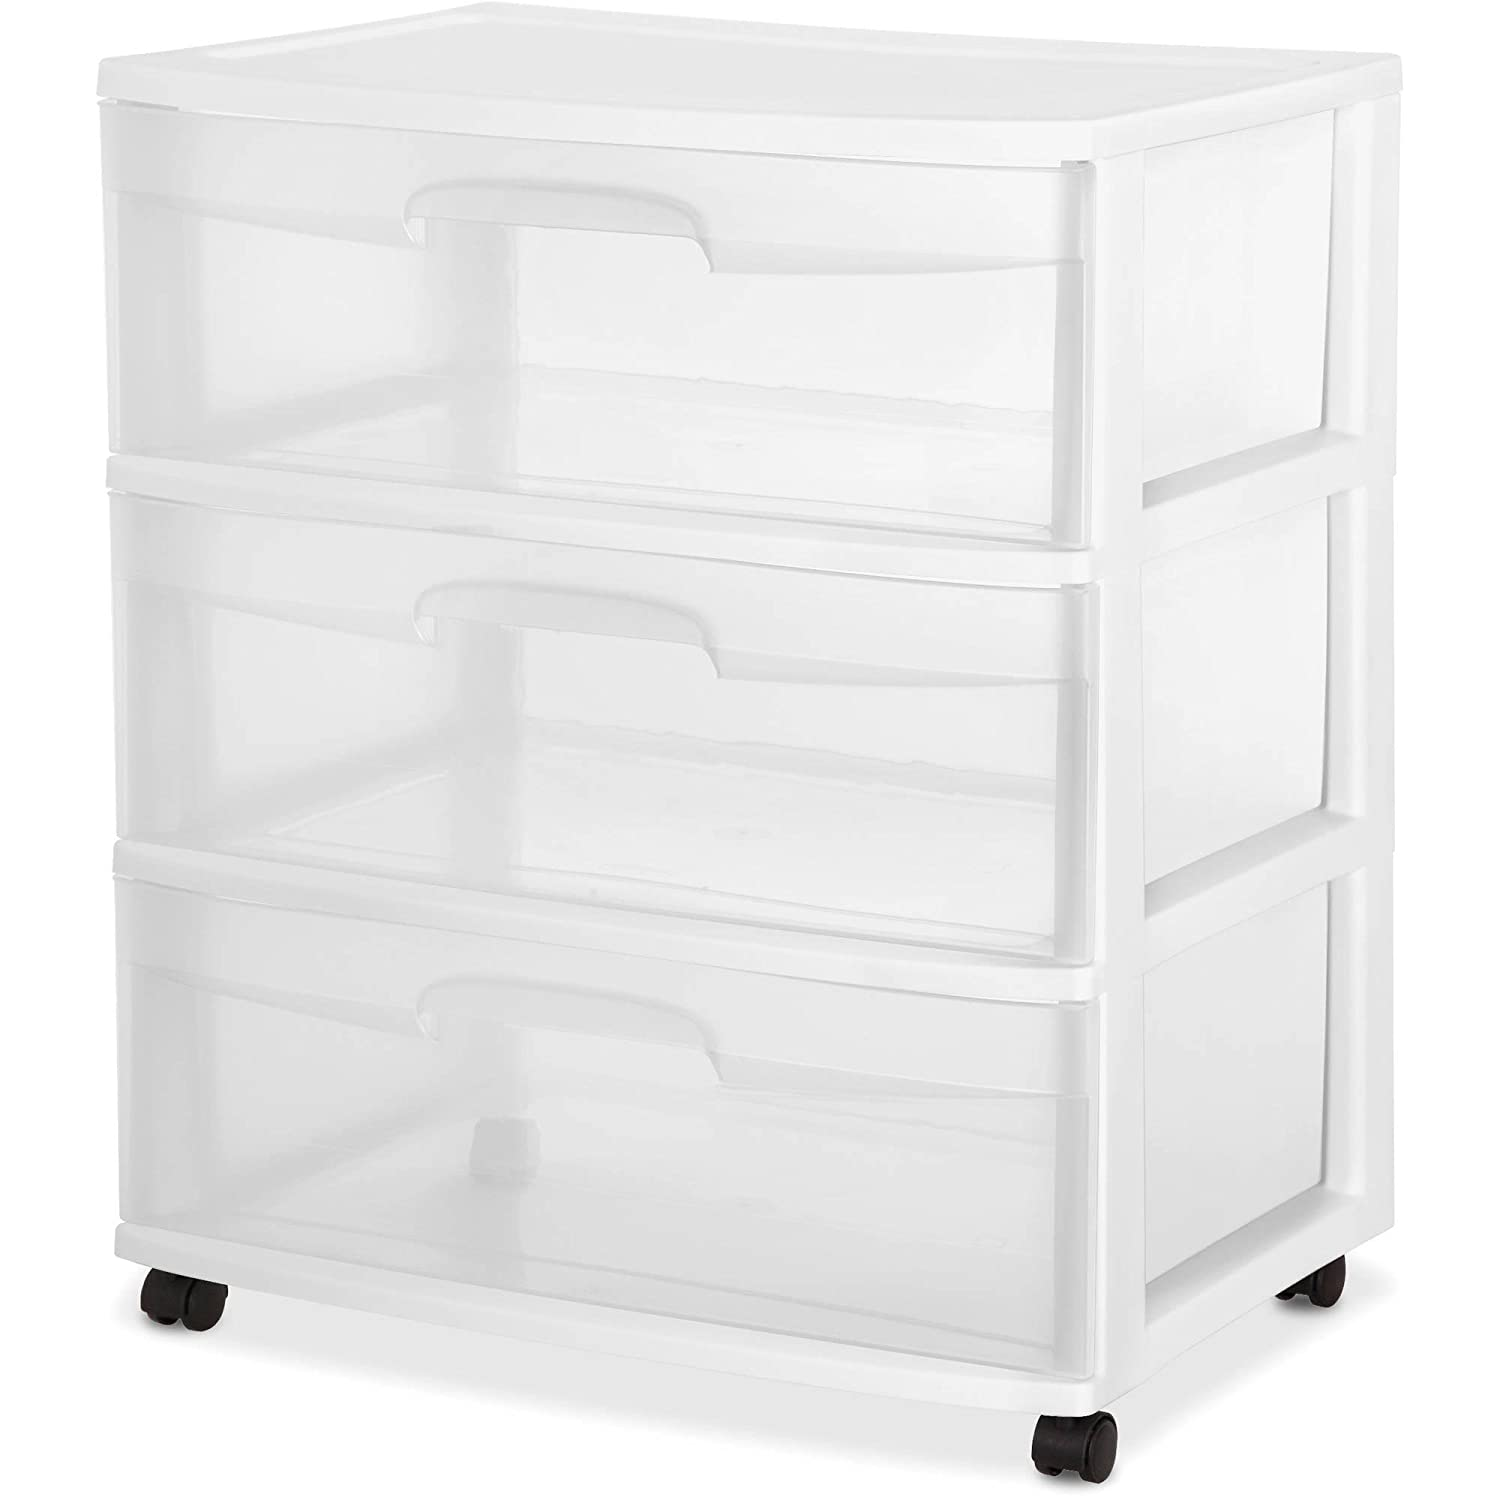 drawers stacking tubs stackable under lids of sale bed with baskets plastic storages storage wheels chest on bins containers